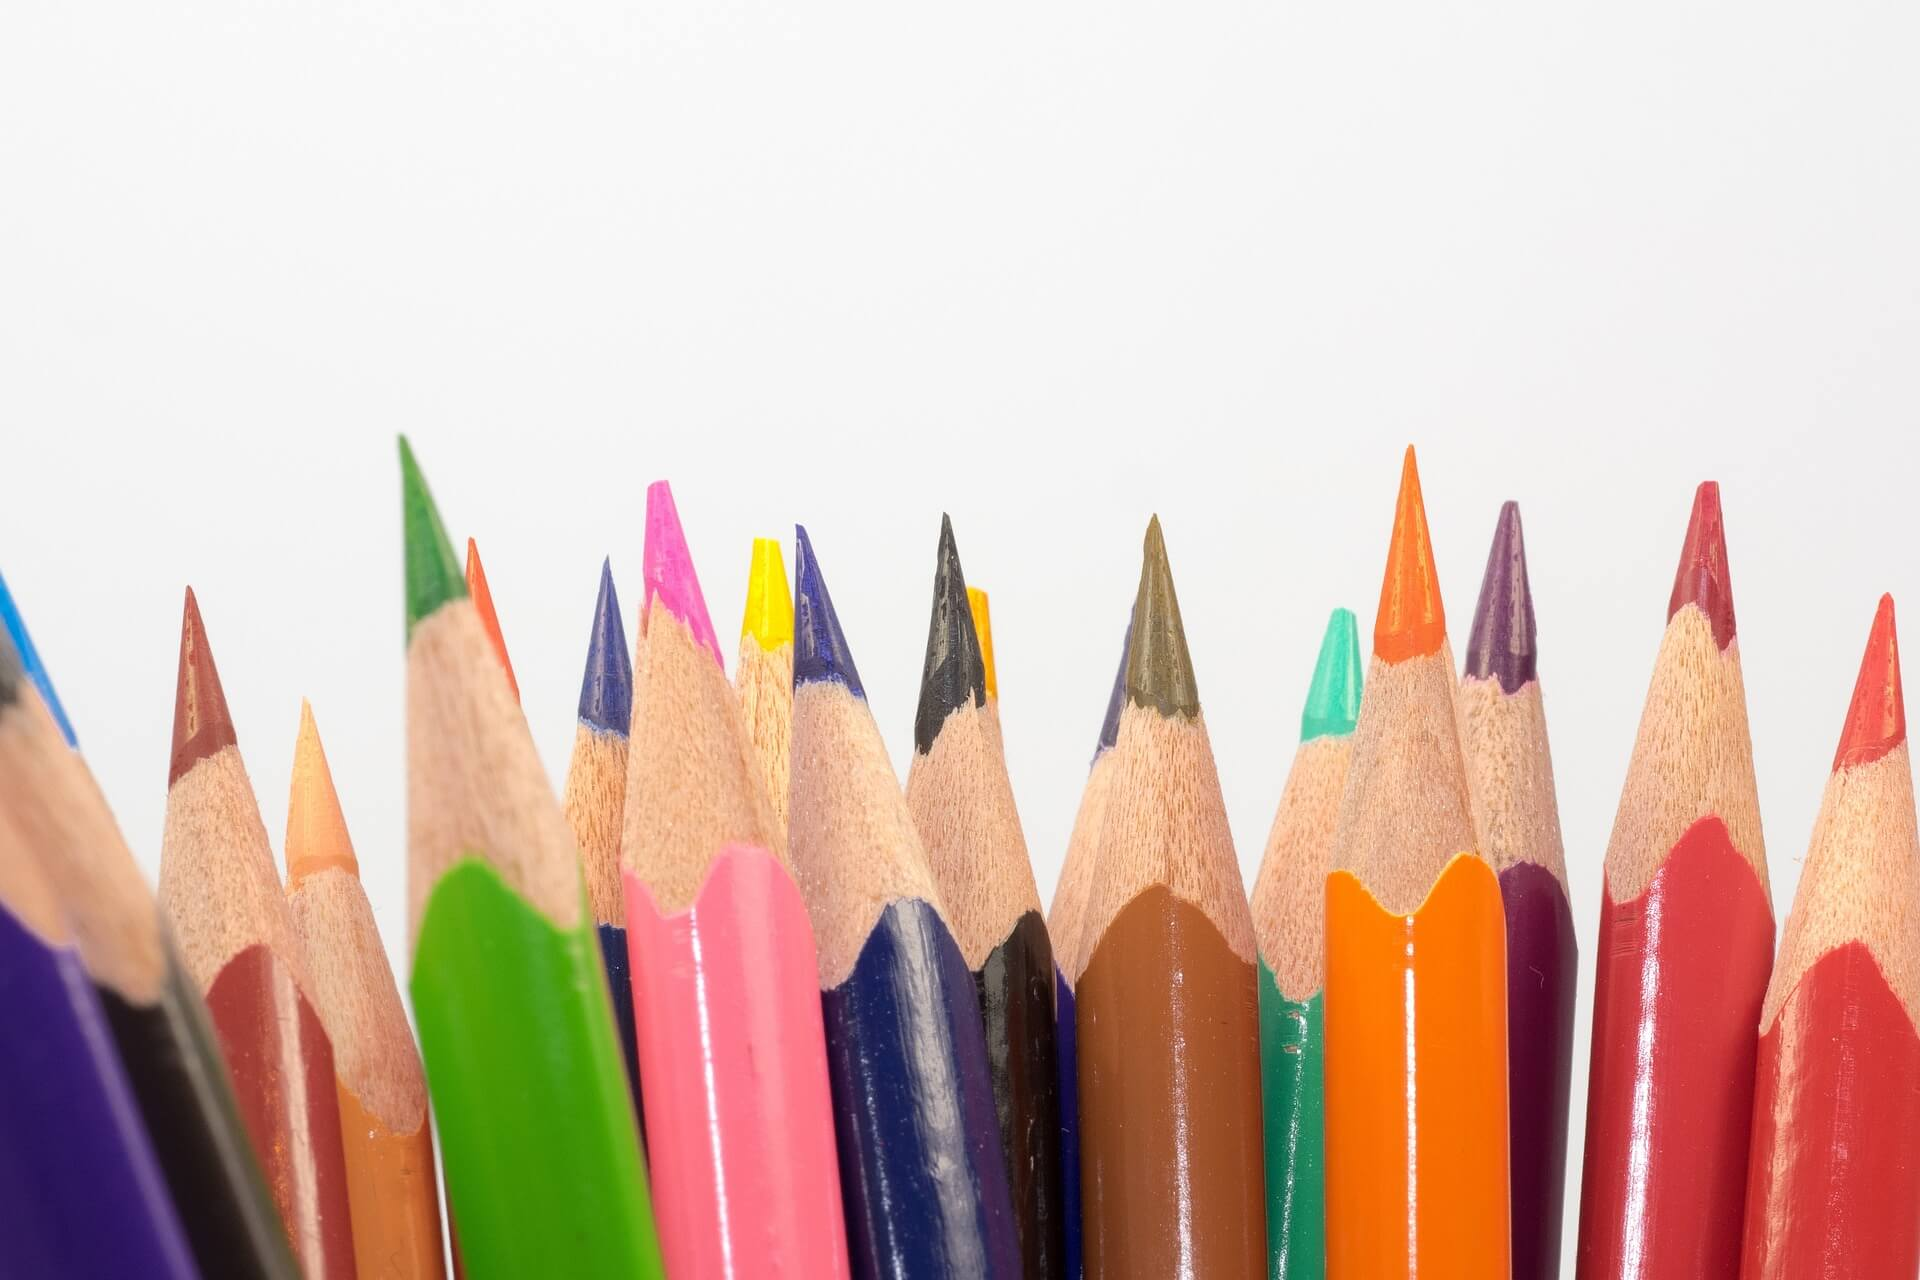 Best Electric Pencil Sharpener For Colored Pencils